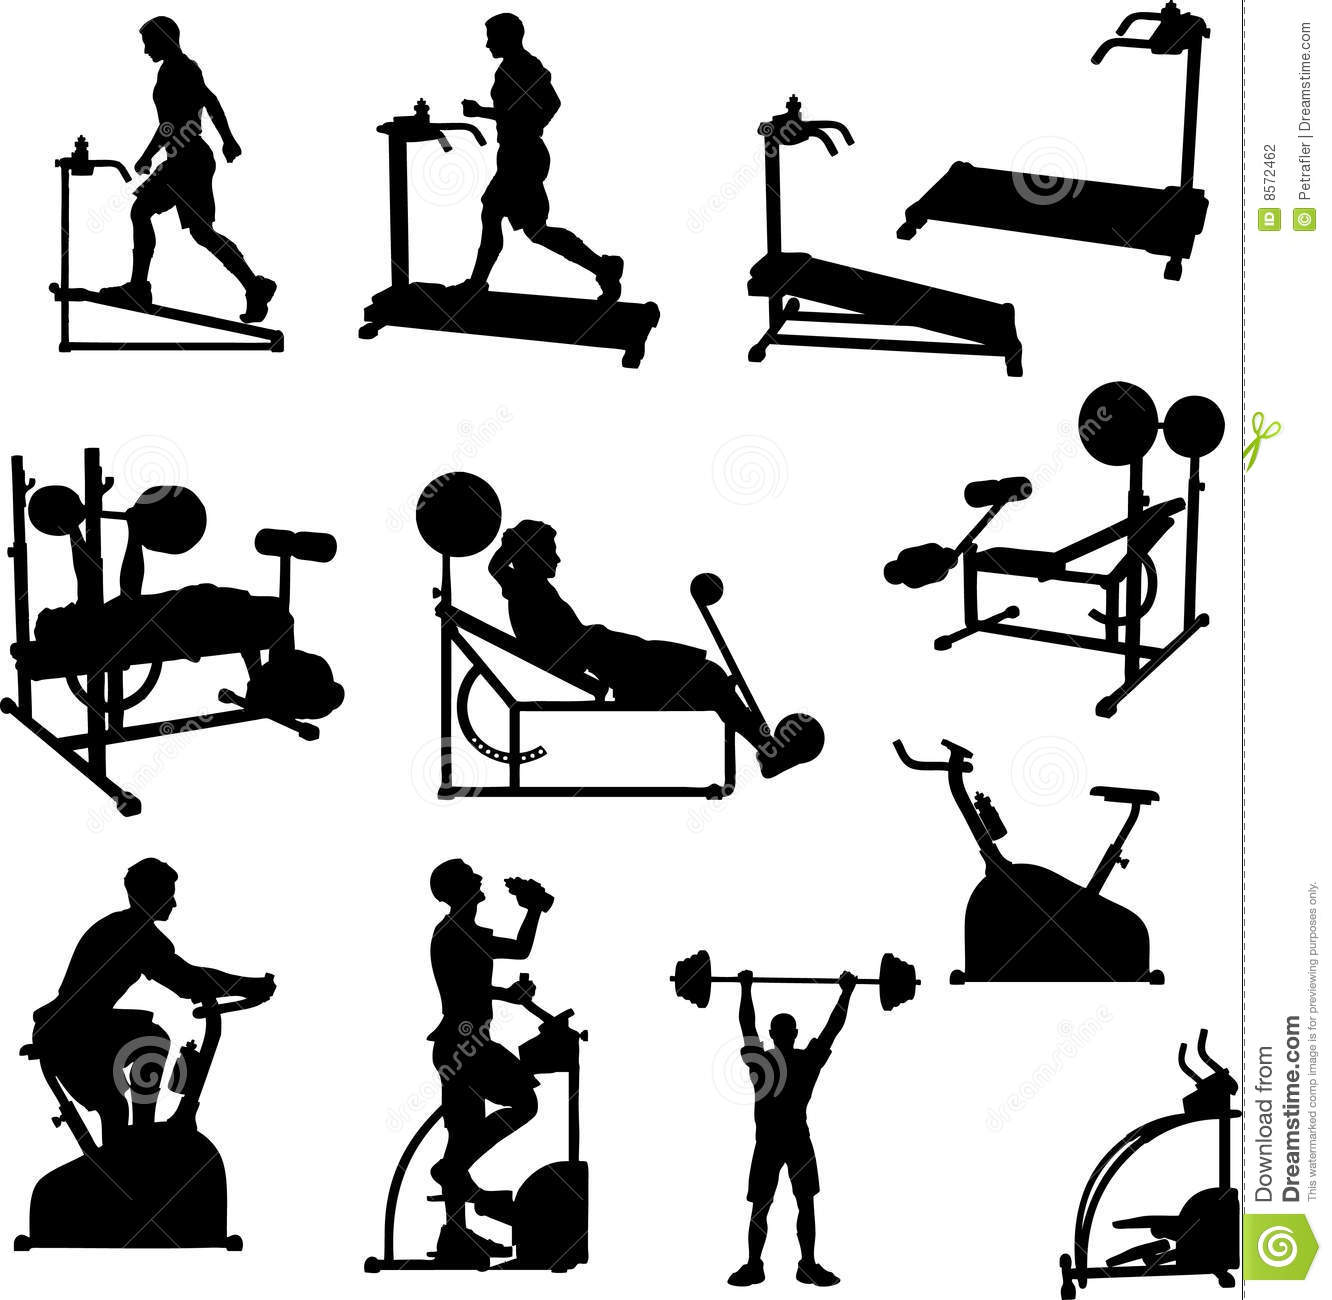 Male Excercise Silhouettes Stock Photography - Image: 8572462